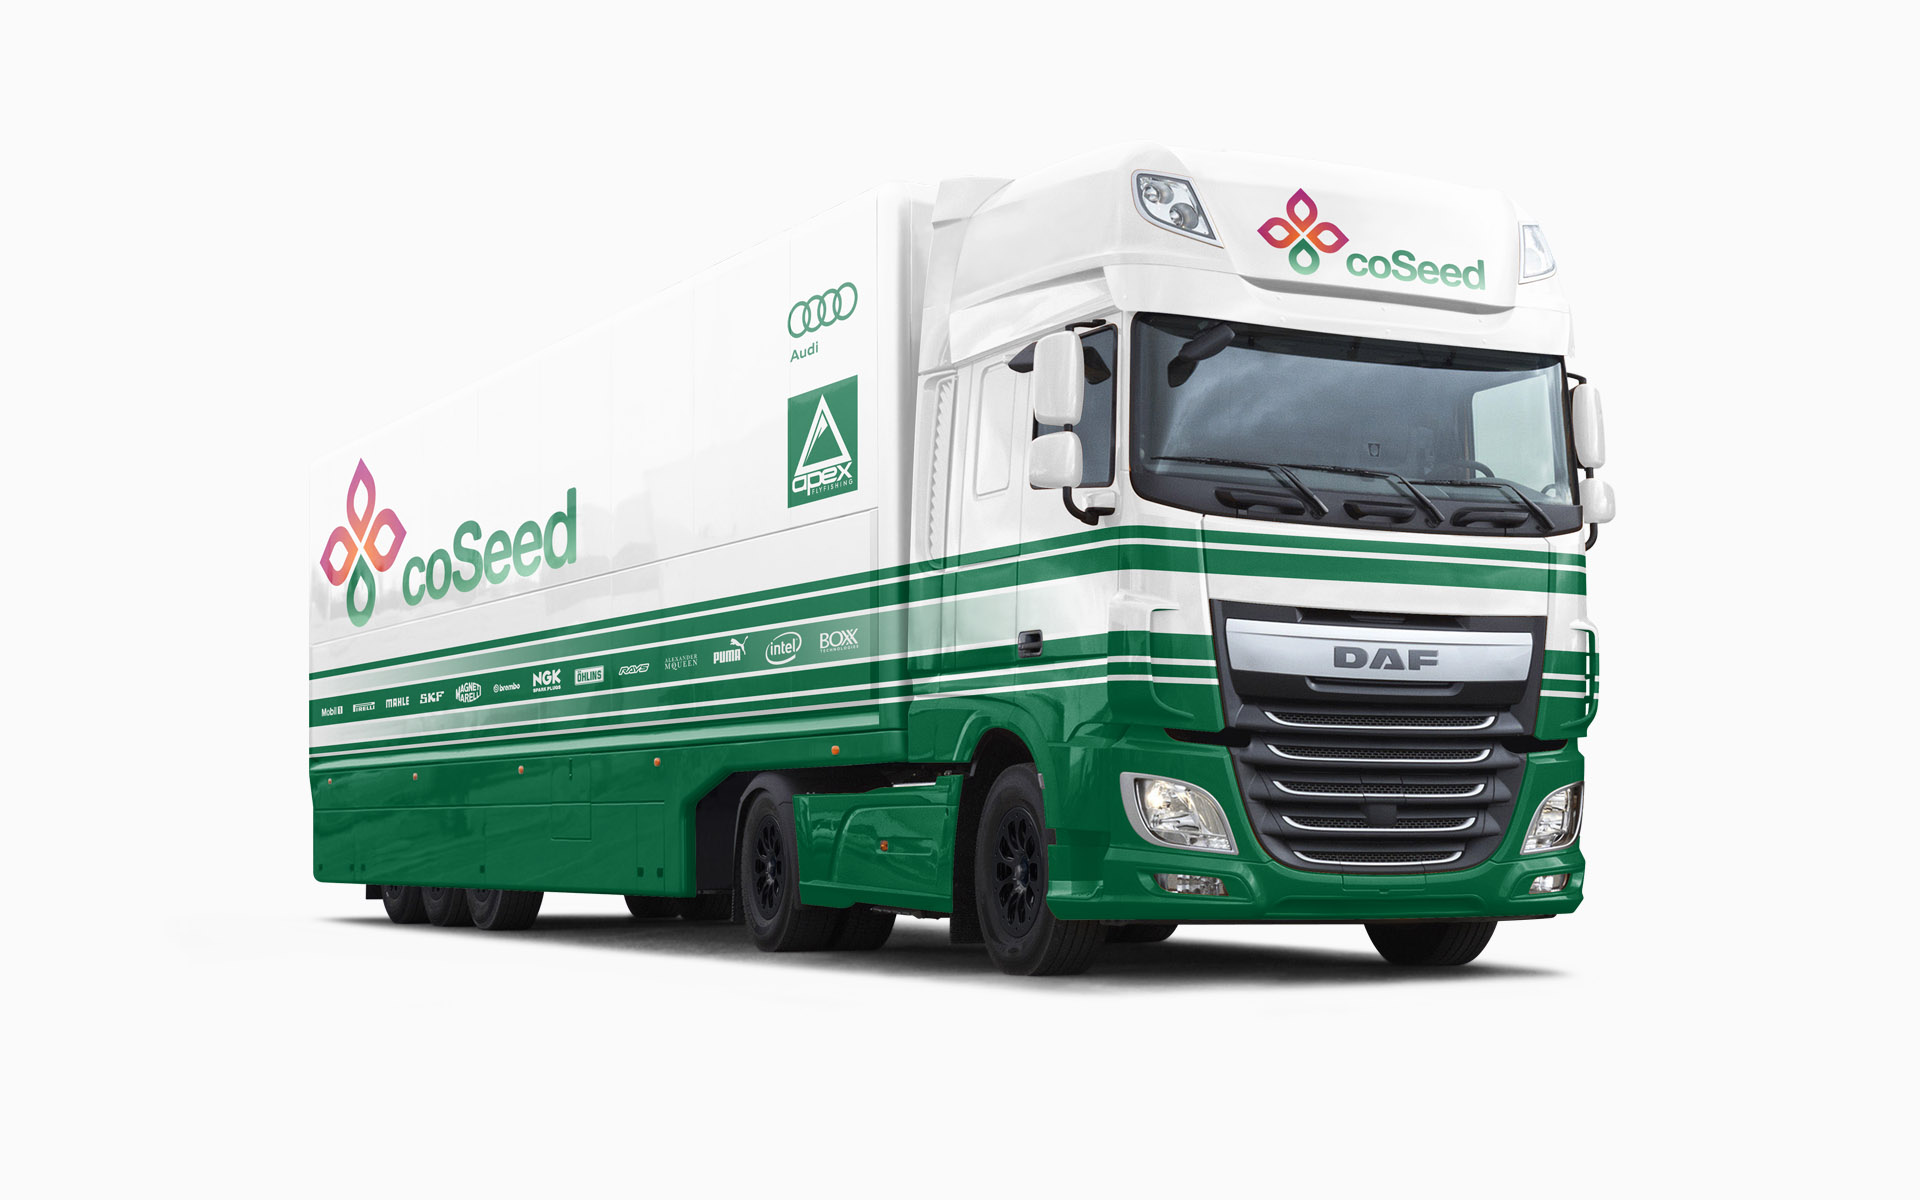 CoSeed F1 Transporter Livery Visualization